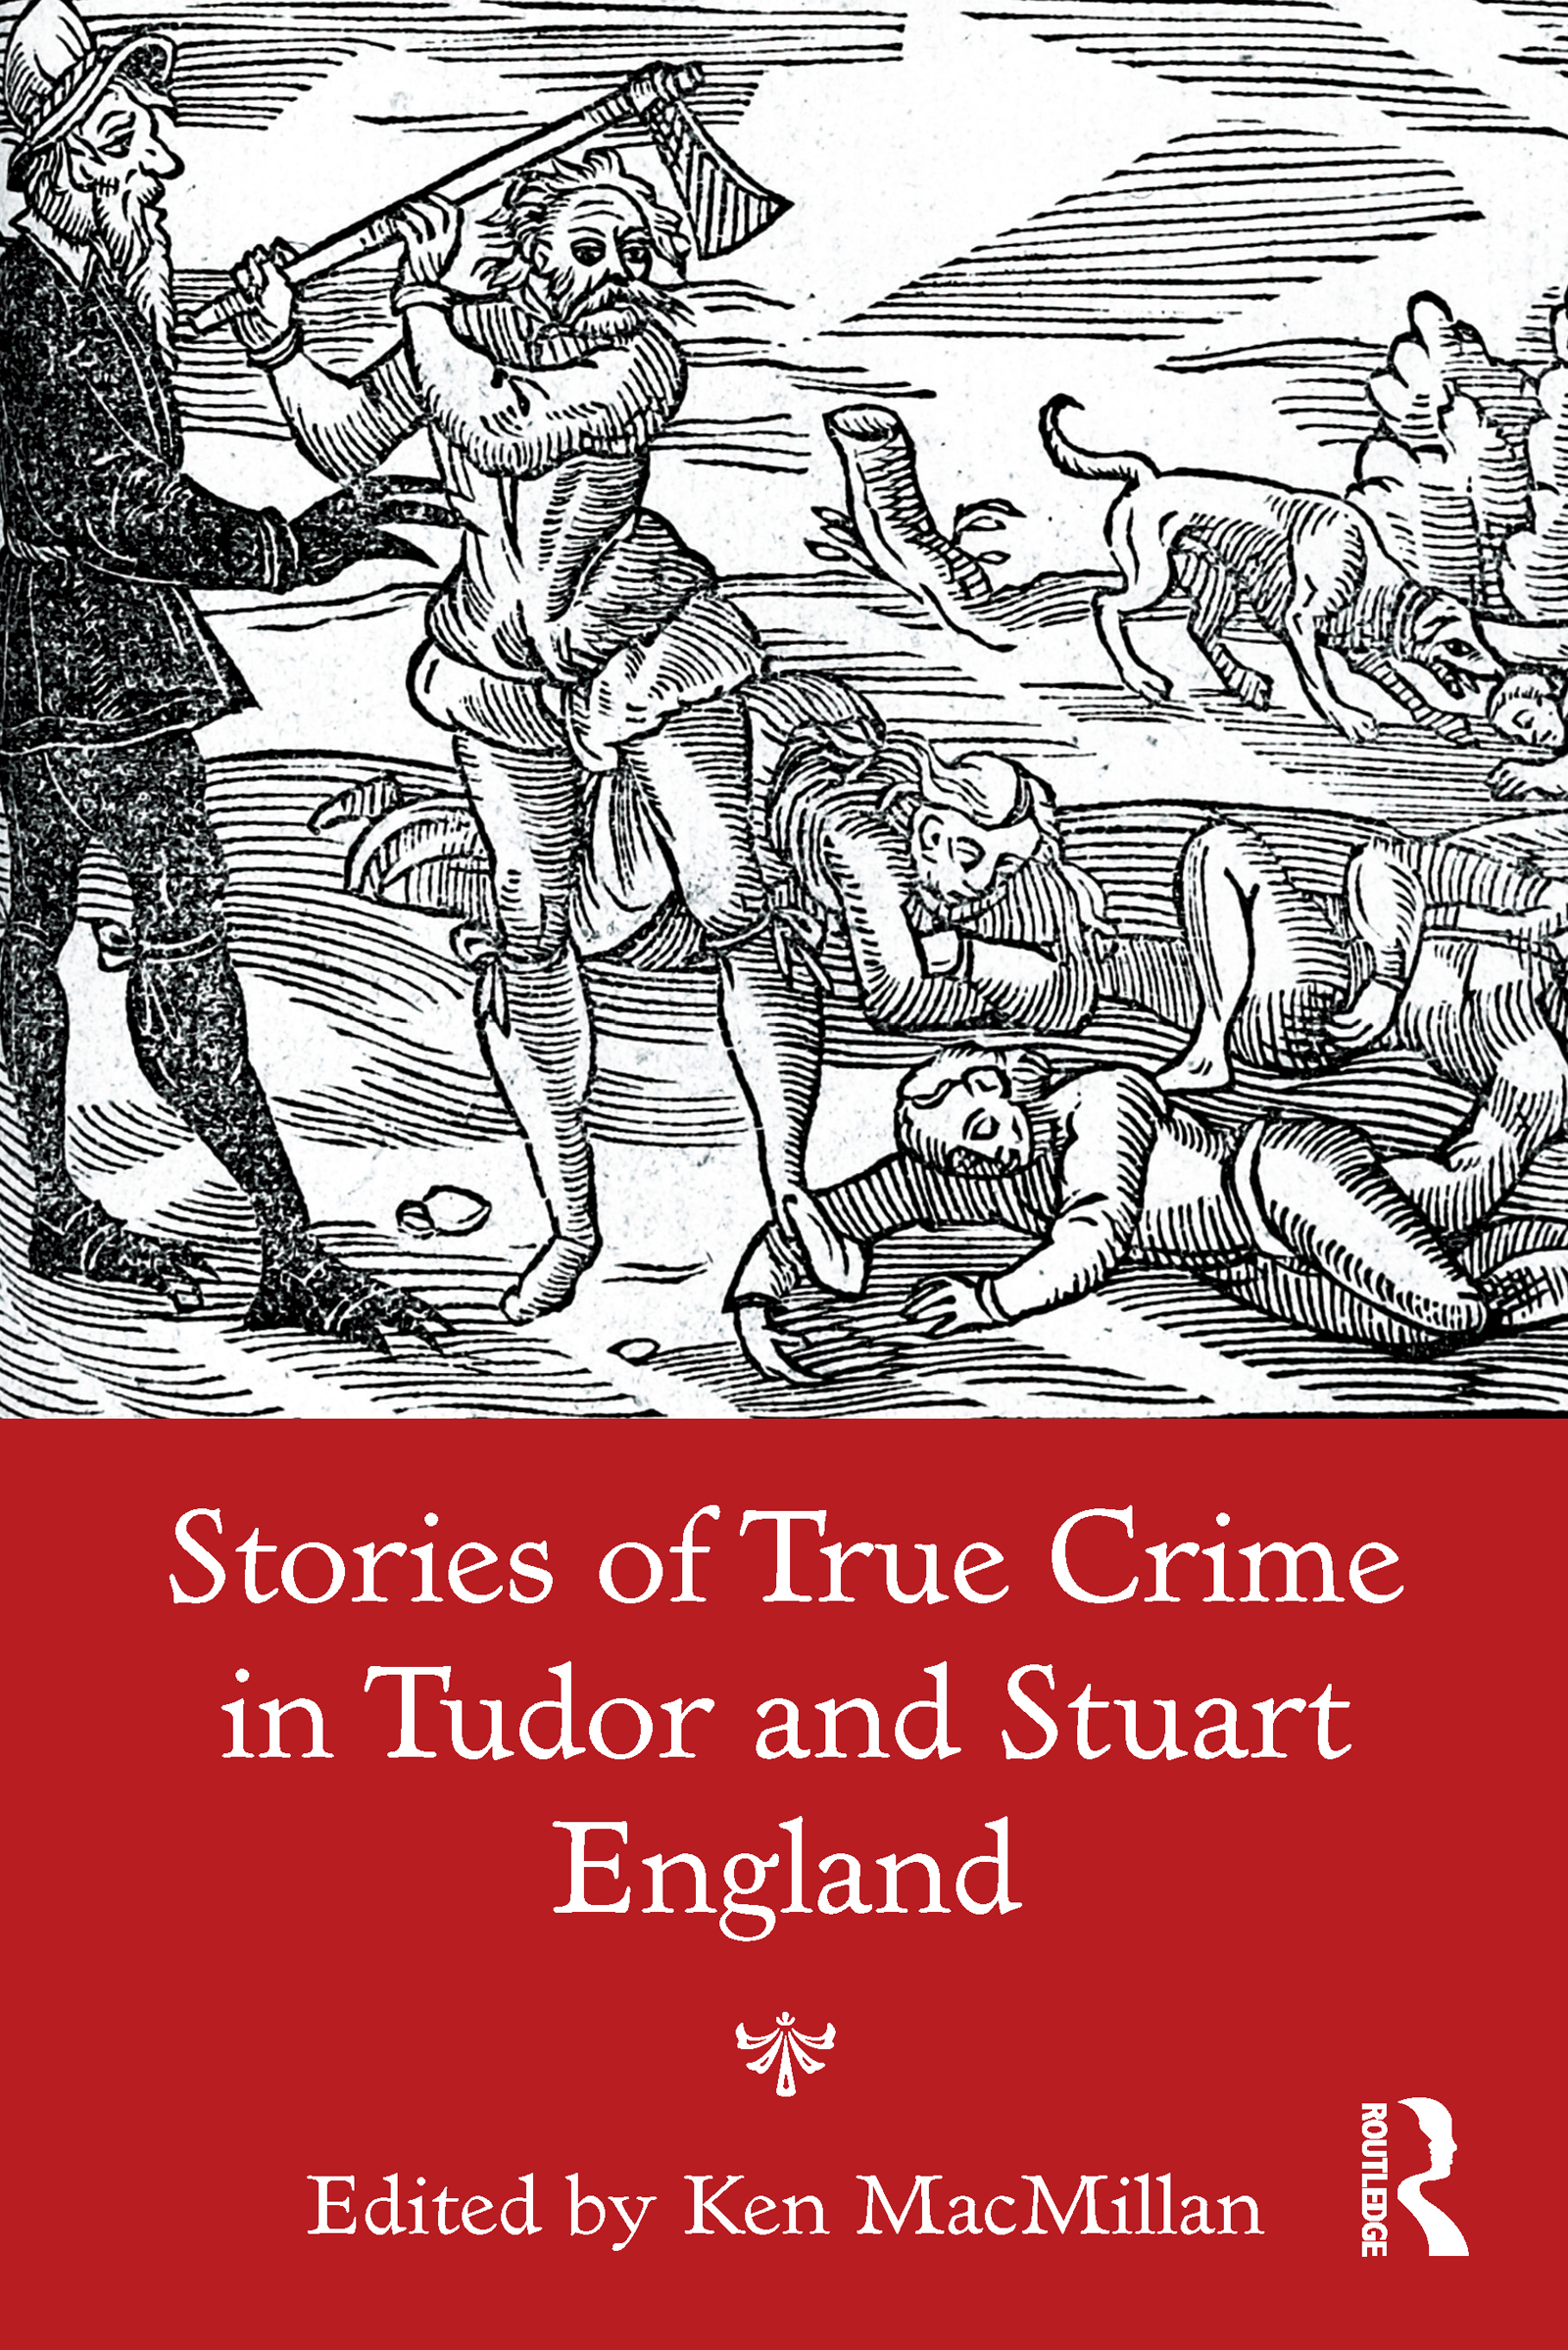 Stories of True Crime in Tudor and Stuart England book cover